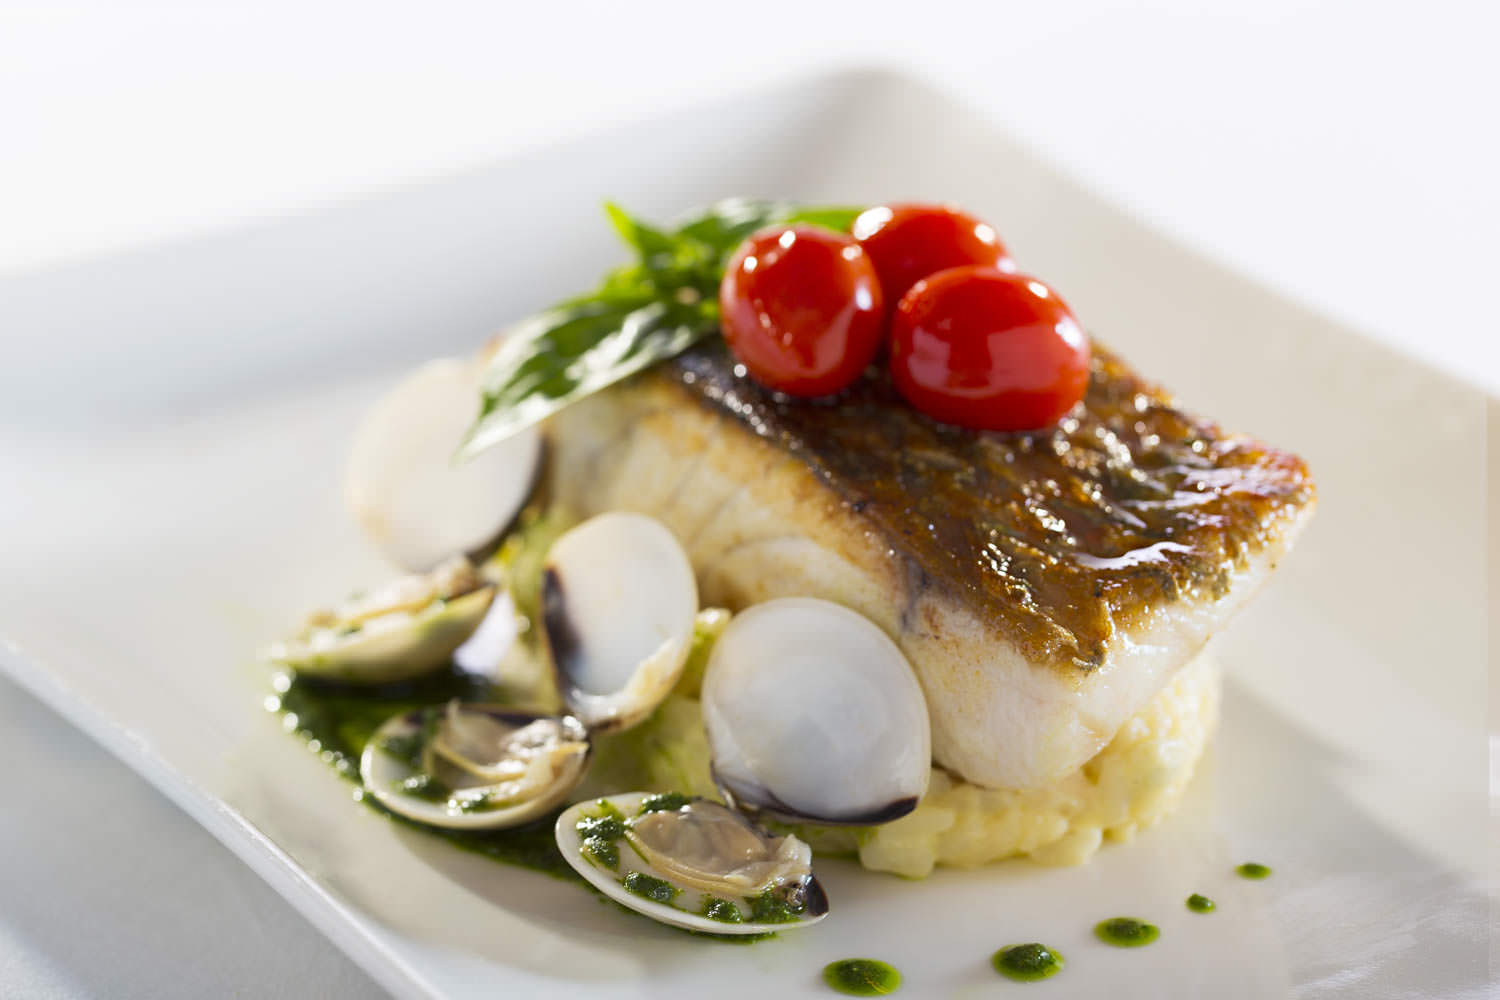 Pan fried Sea Bass with Clam on pesto sauce in Hilton Opera Hanoi | Vietnam Food Photography | Francis Roux Commercial Photographer